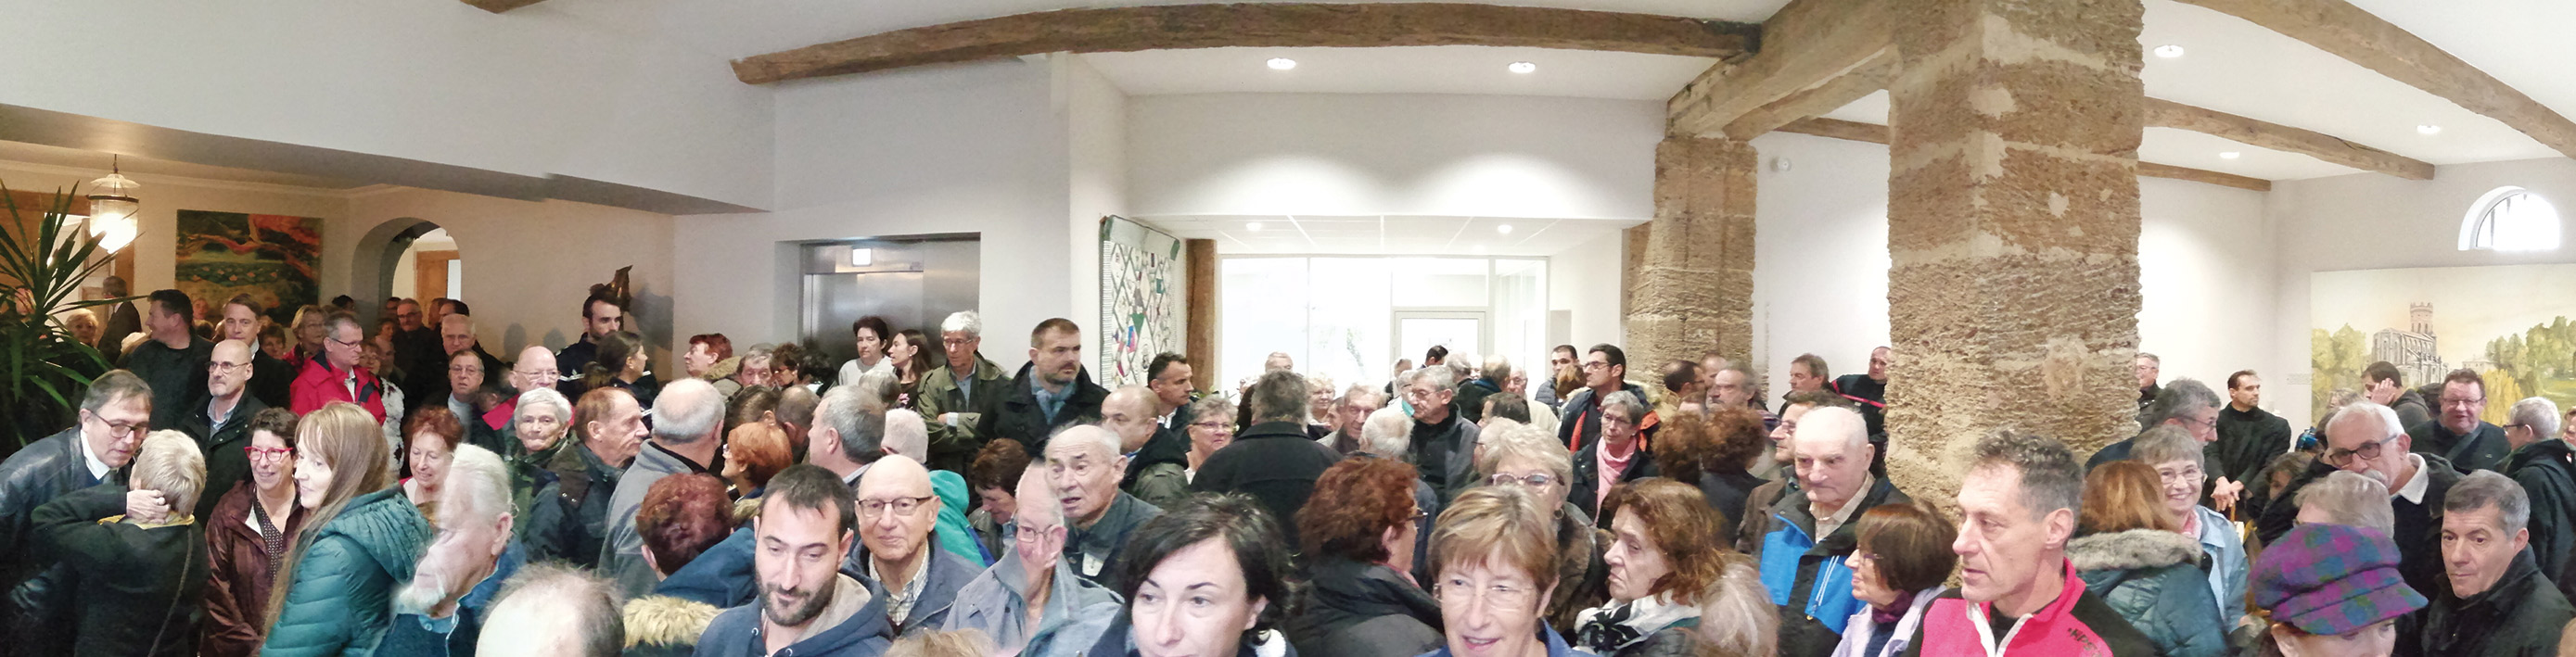 Mairie Le Houga - Inauguration nouvelle Mairie